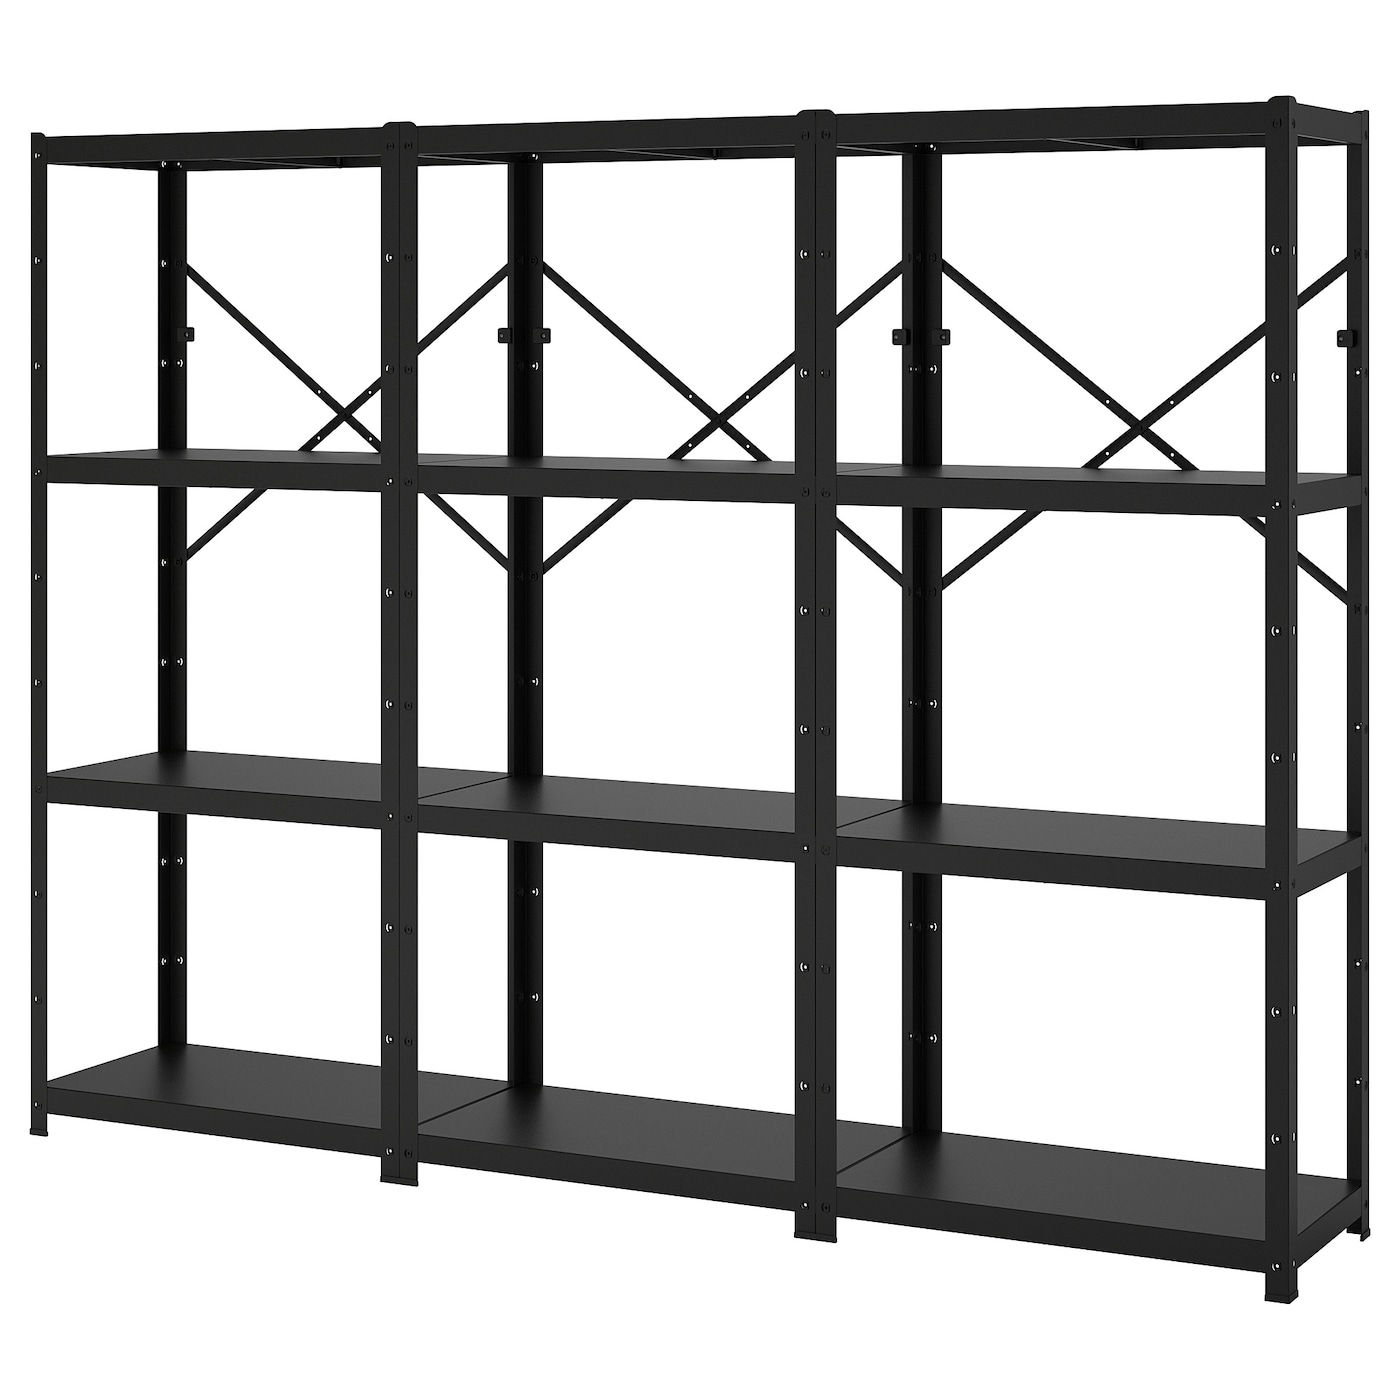 IKEA BROR shelving unit Perfect for big heavy items like tools and books.